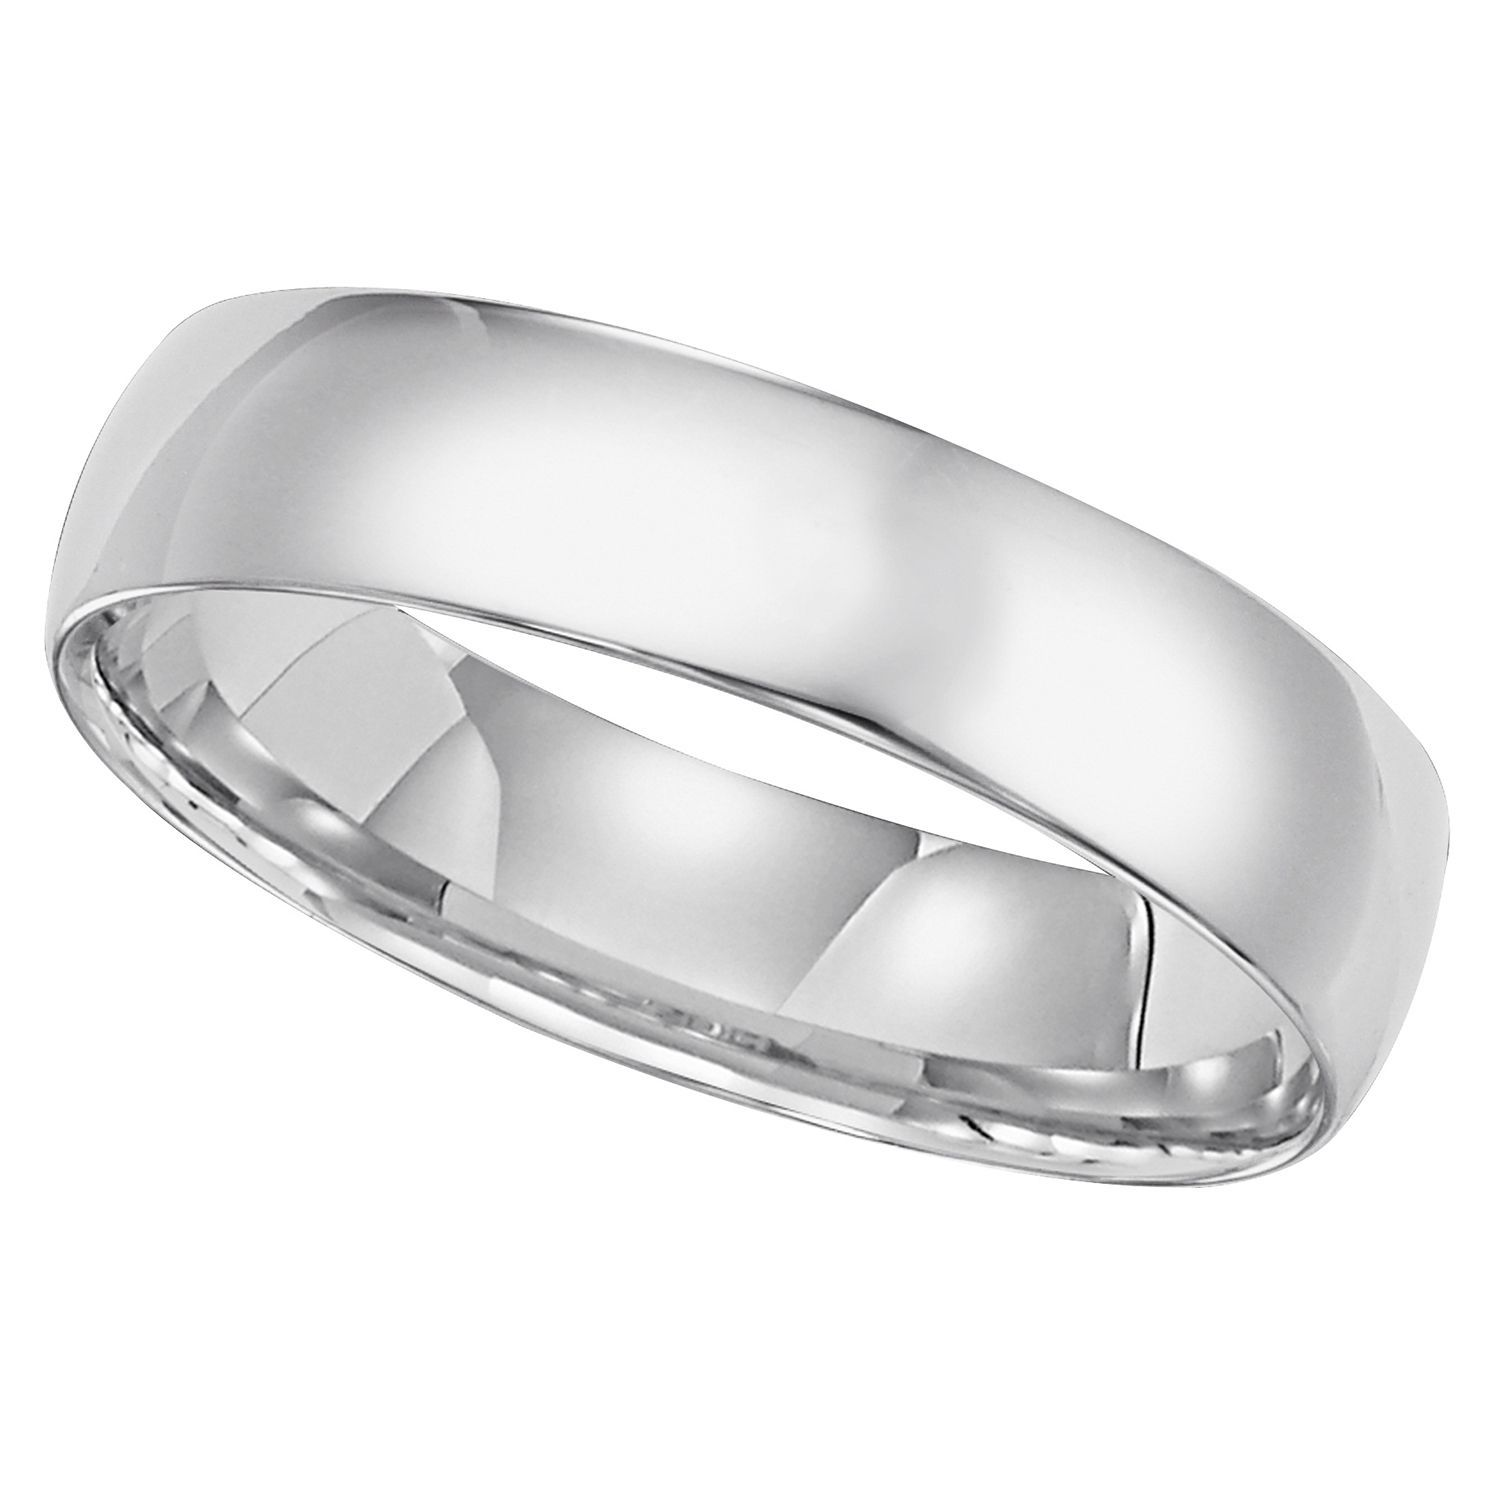 Buy 5mm White Gold Comfort Fit Band in 14K White Gold : Women's Bands at SamsClub.com